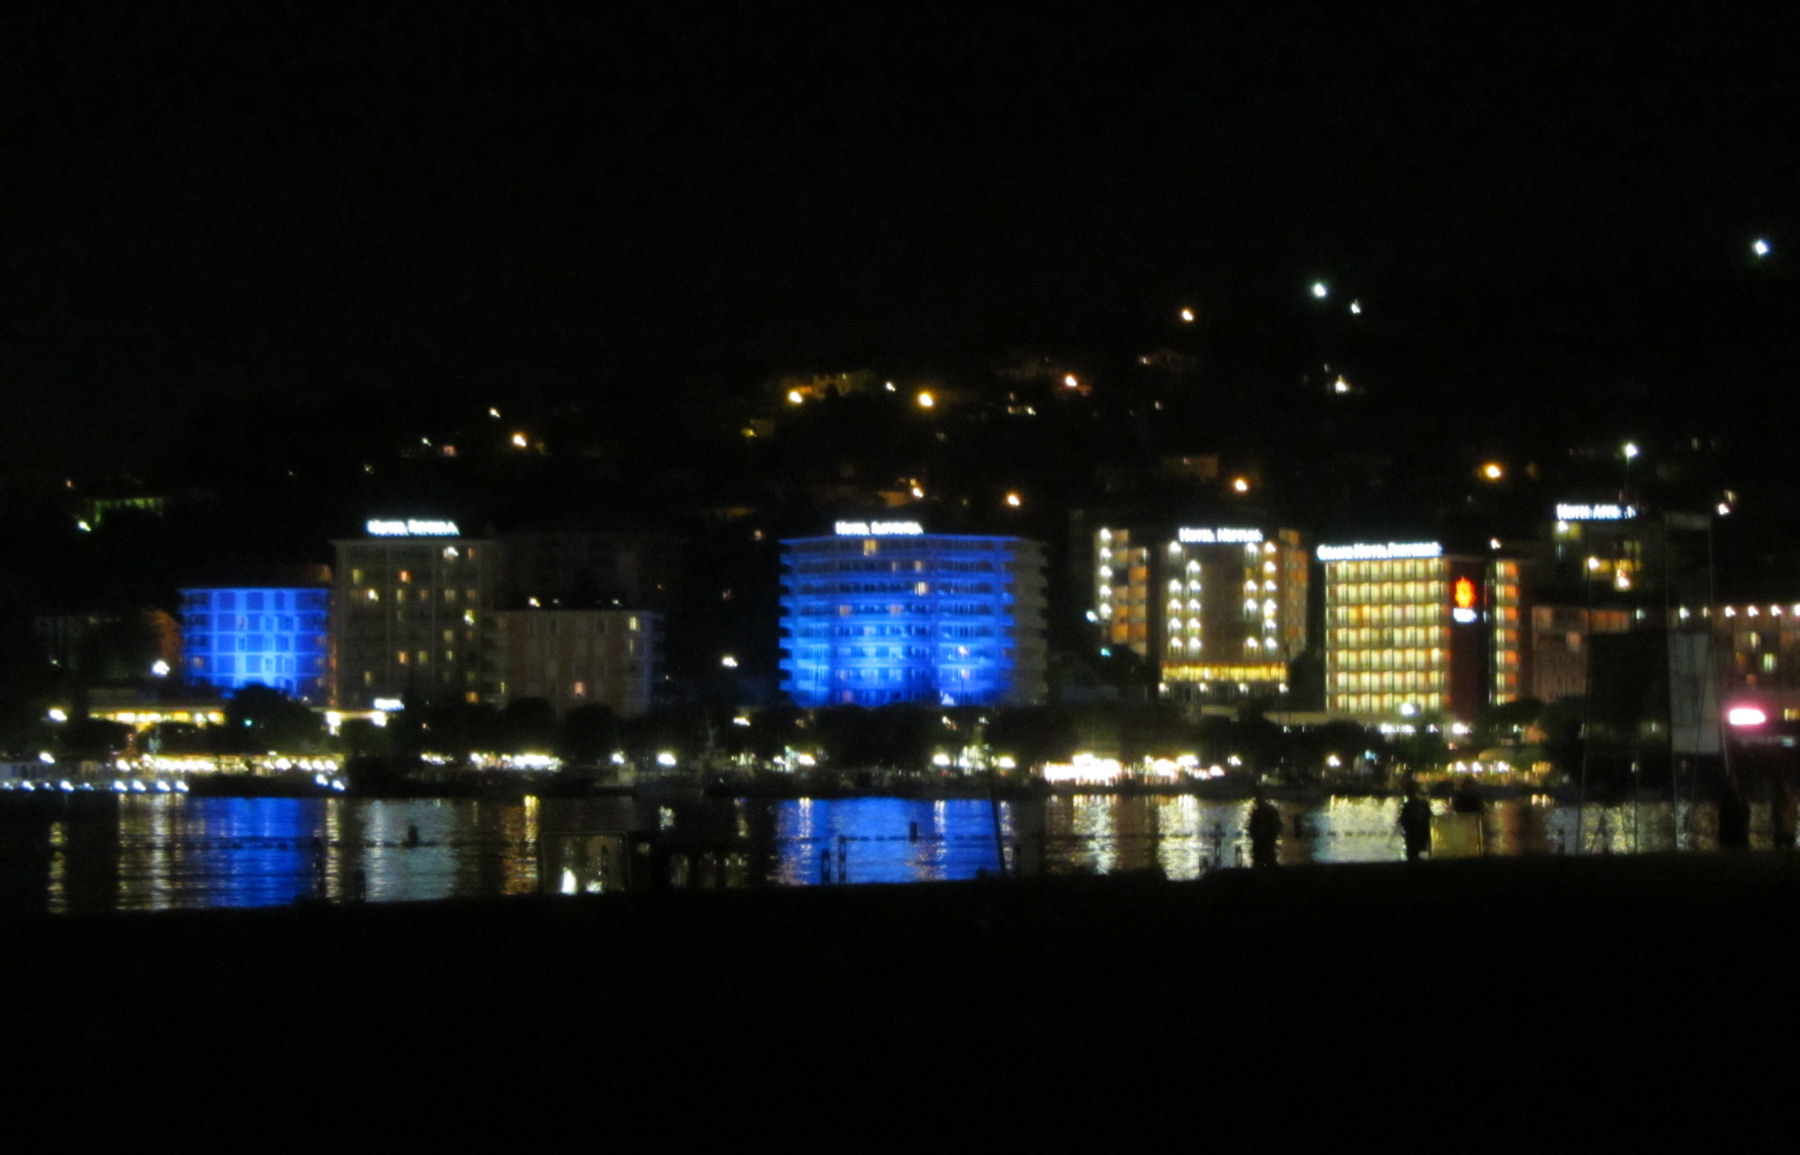 Portoroz is a charming seaside tourist town especially when lit up at night